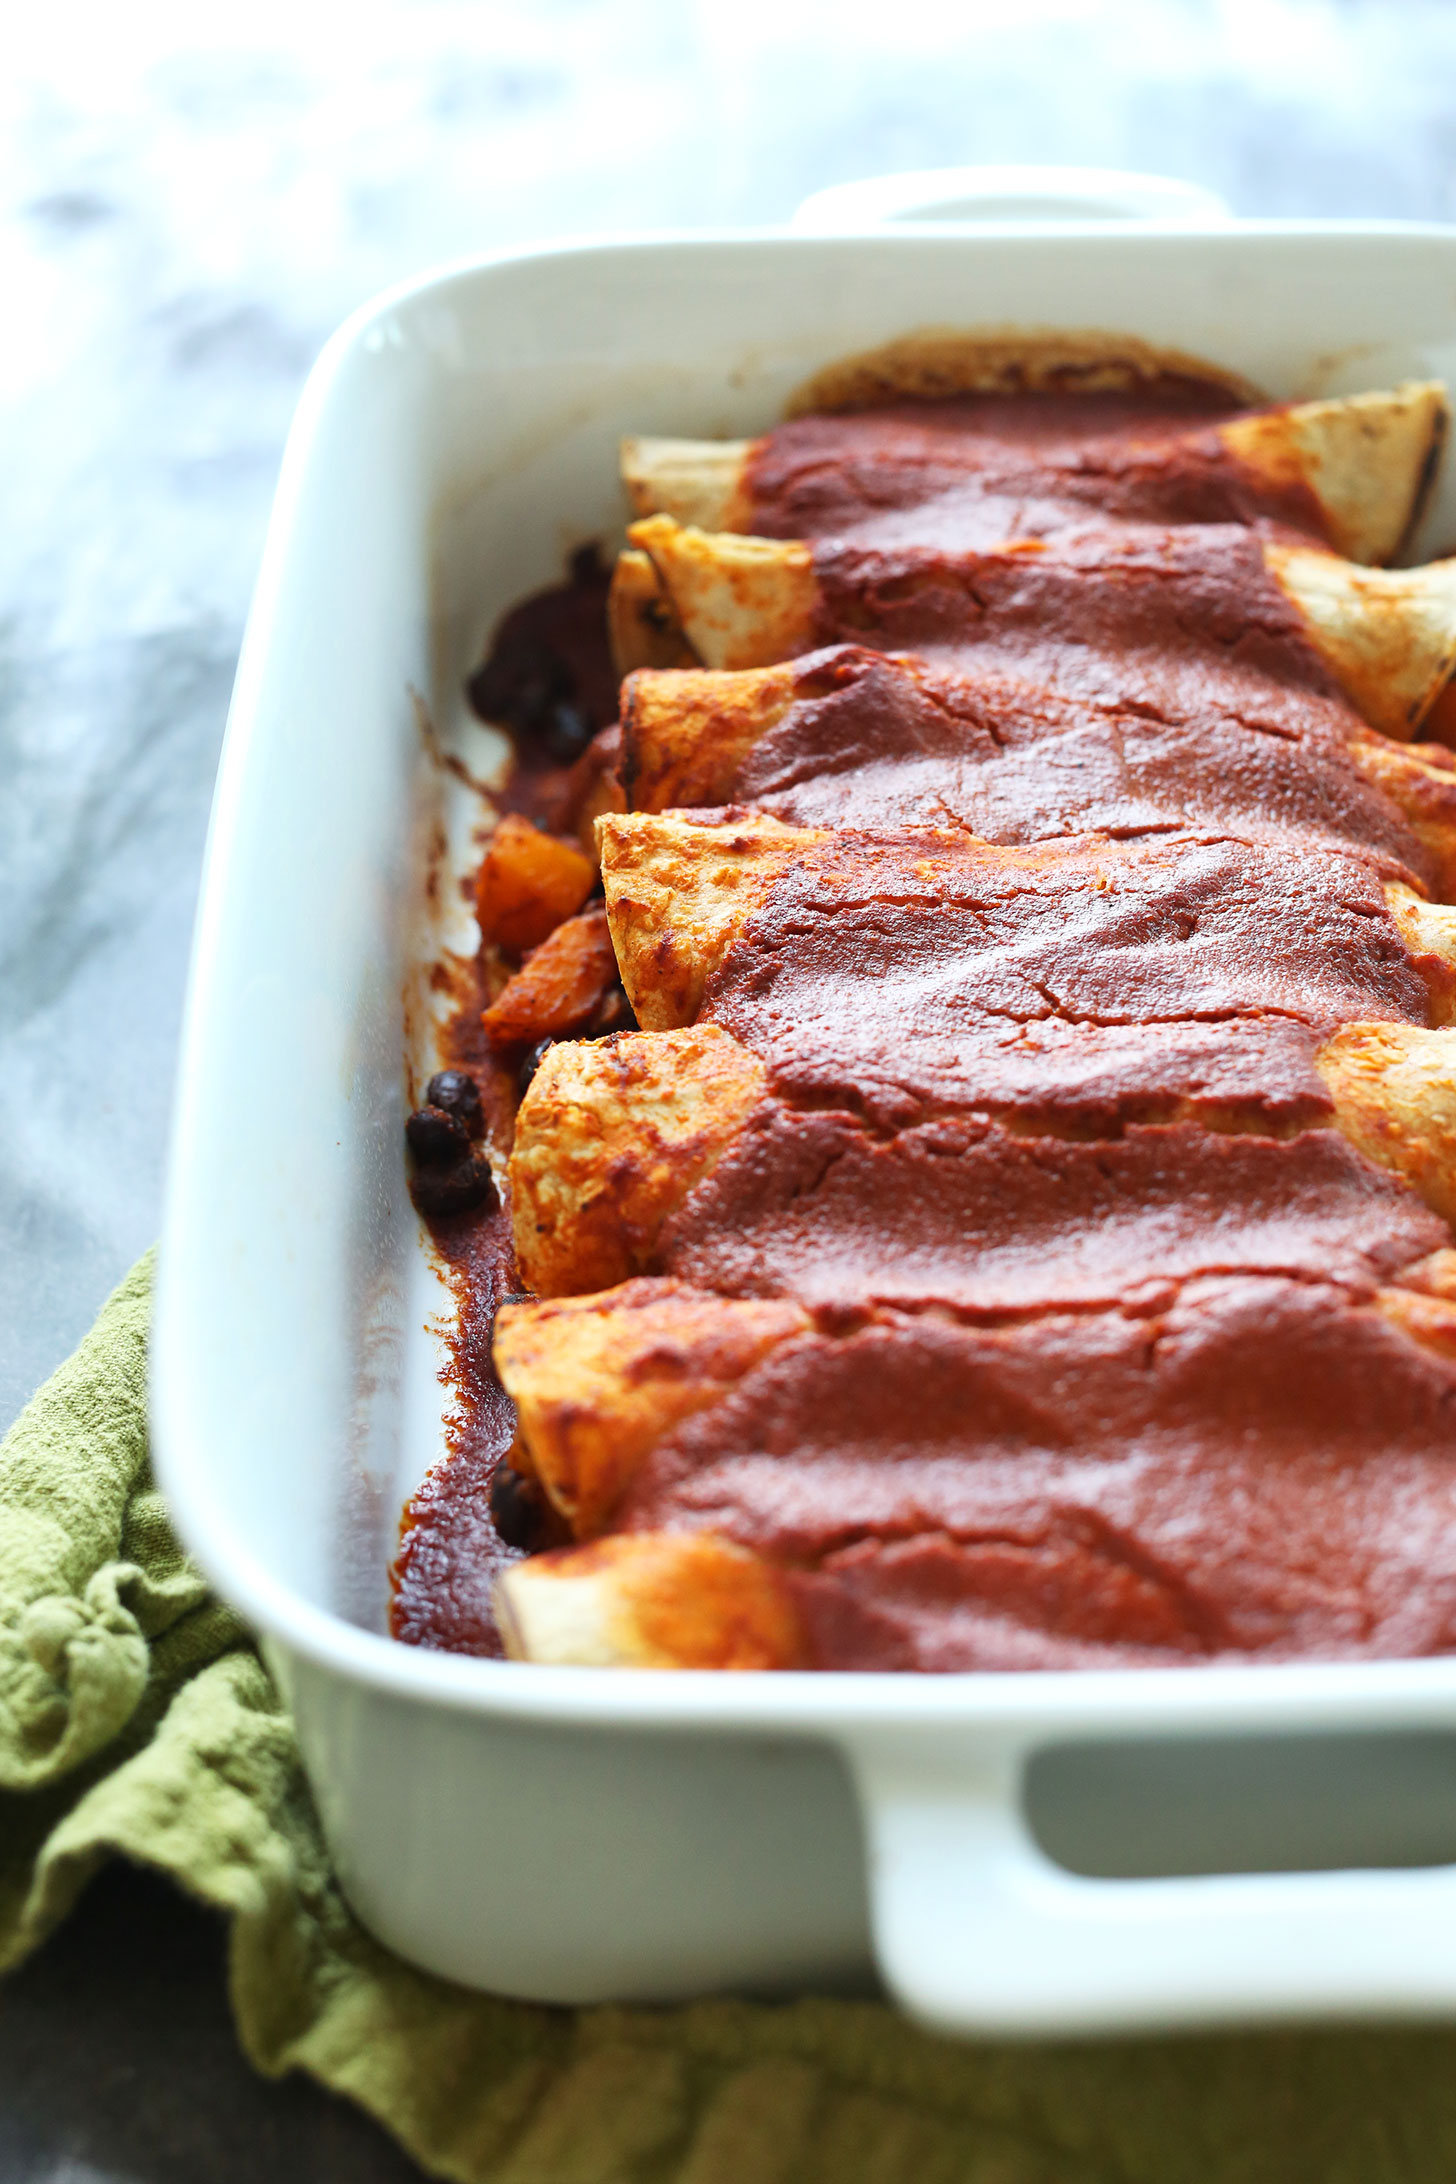 Ceramic baking dish filled with Butternut Squash Enchiladas for a gluten-free plant-based dinner